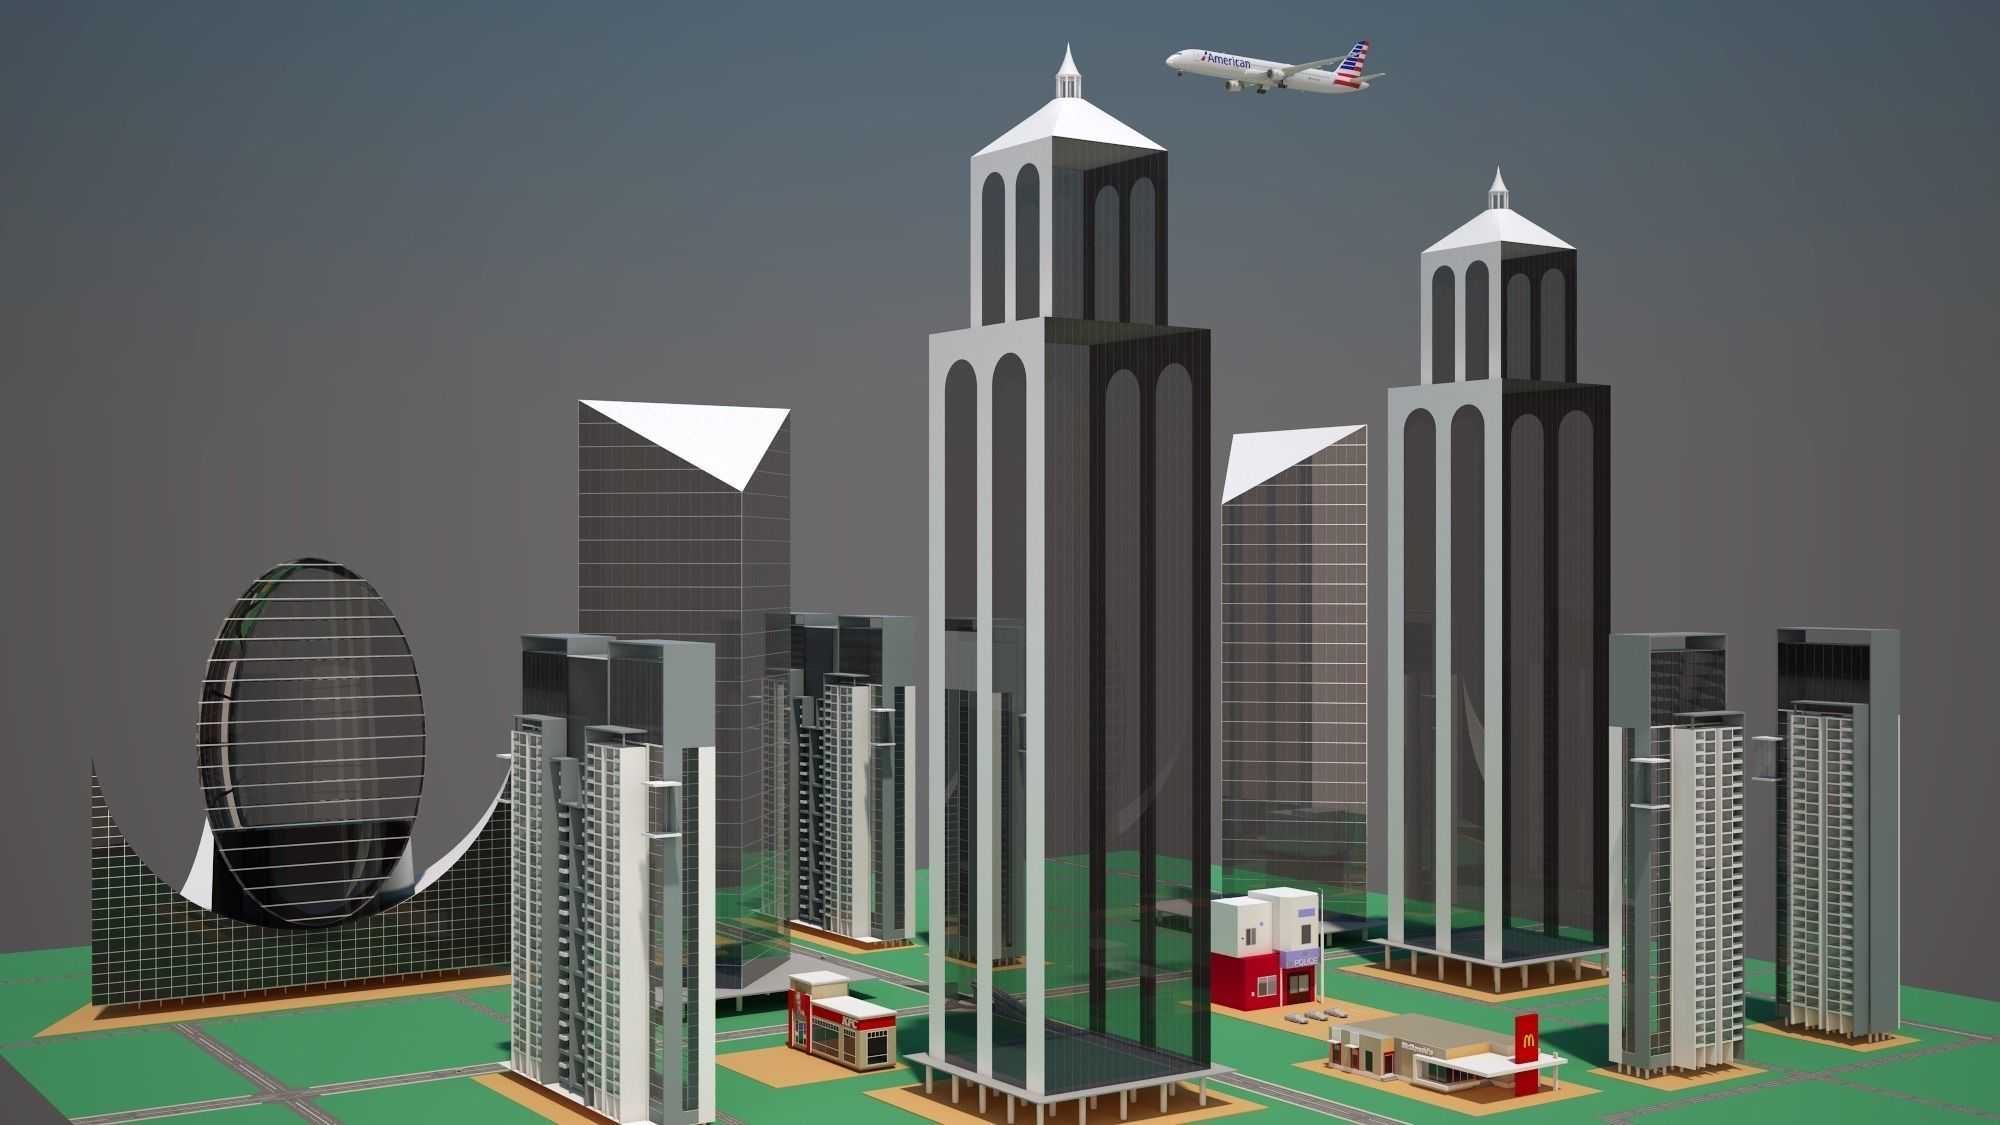 Part of a City with Animated Aircraft